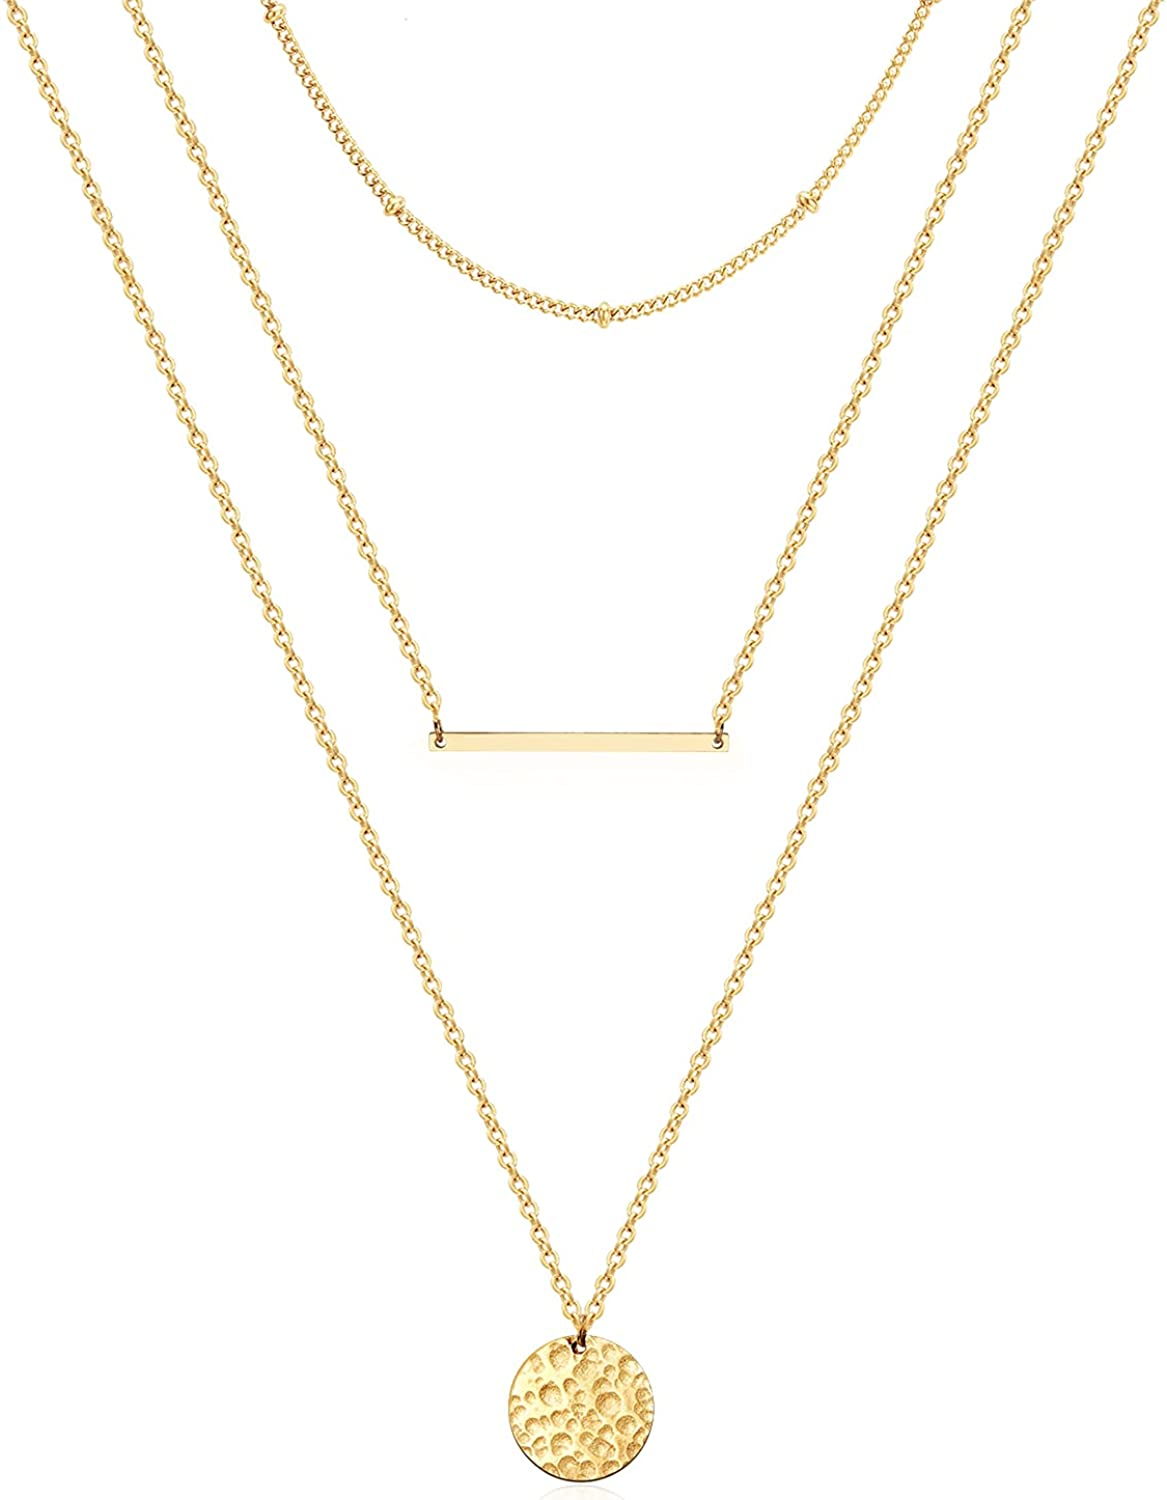 Ldurian Dainty Circle Karma Choker Necklace 14K Real Gold Plated Delicate Circle Necklace for Women